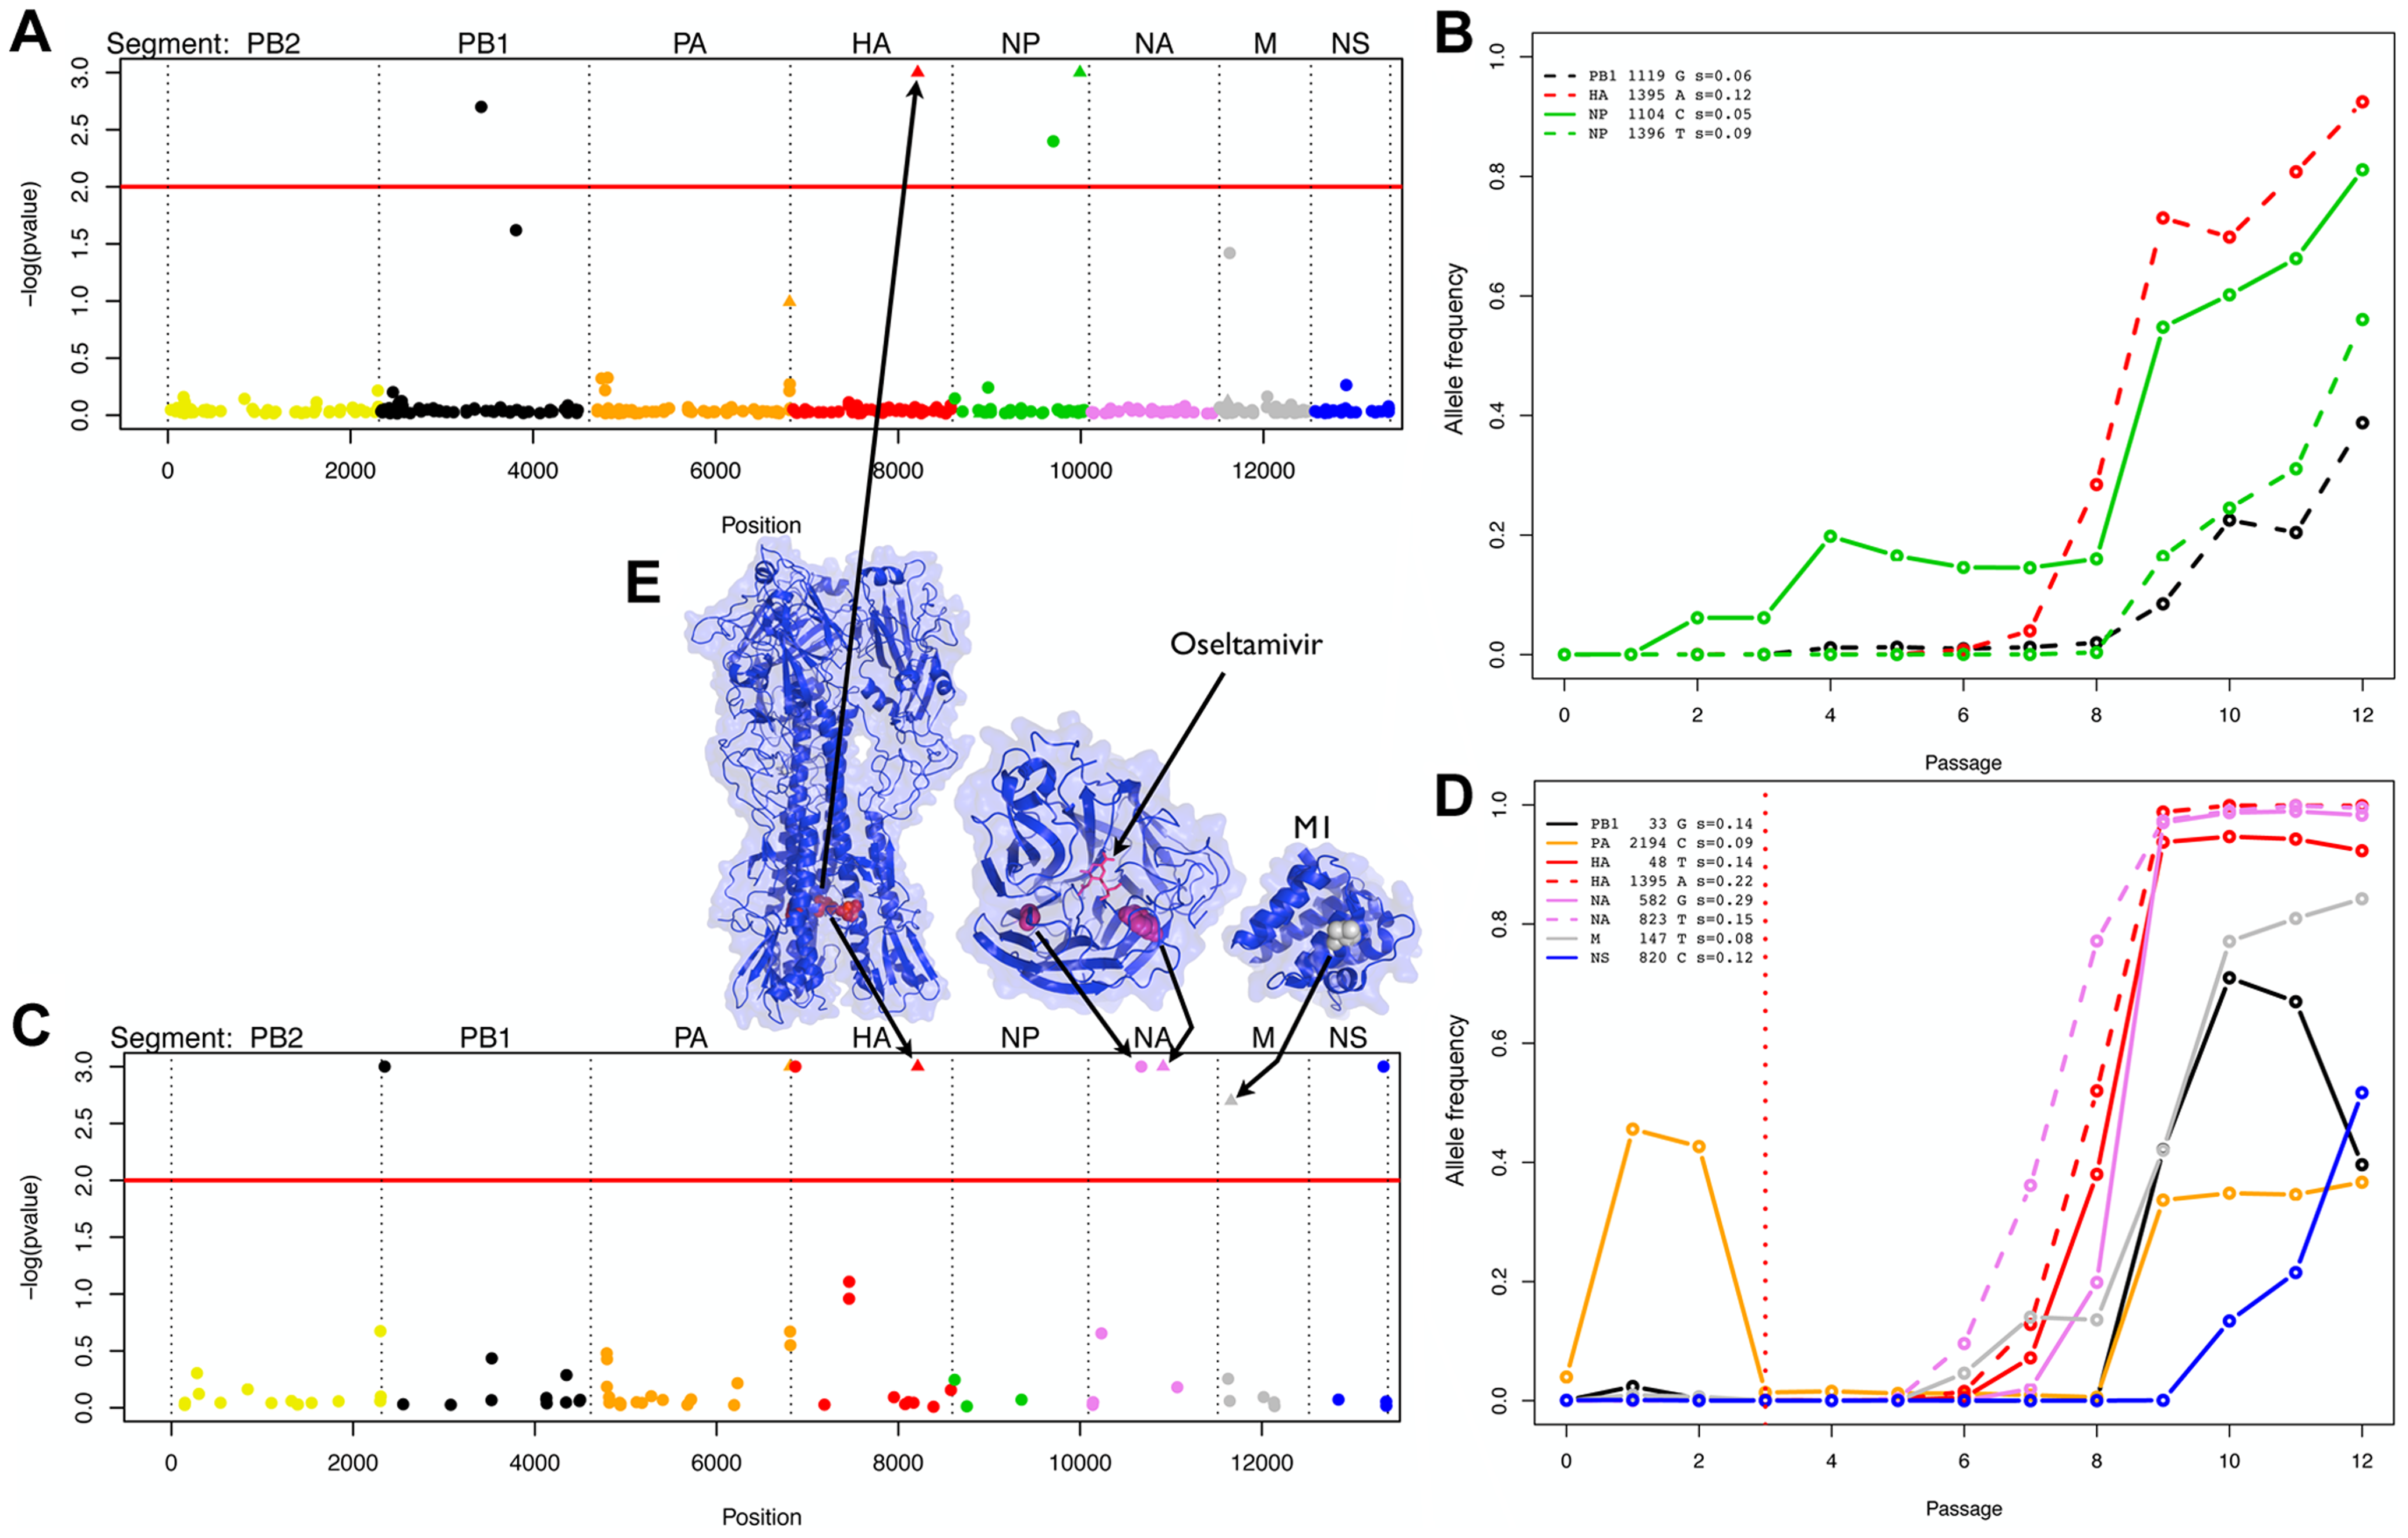 Evidence of positive selection in the H1N1 genome in the absence and presence of oseltamivir.